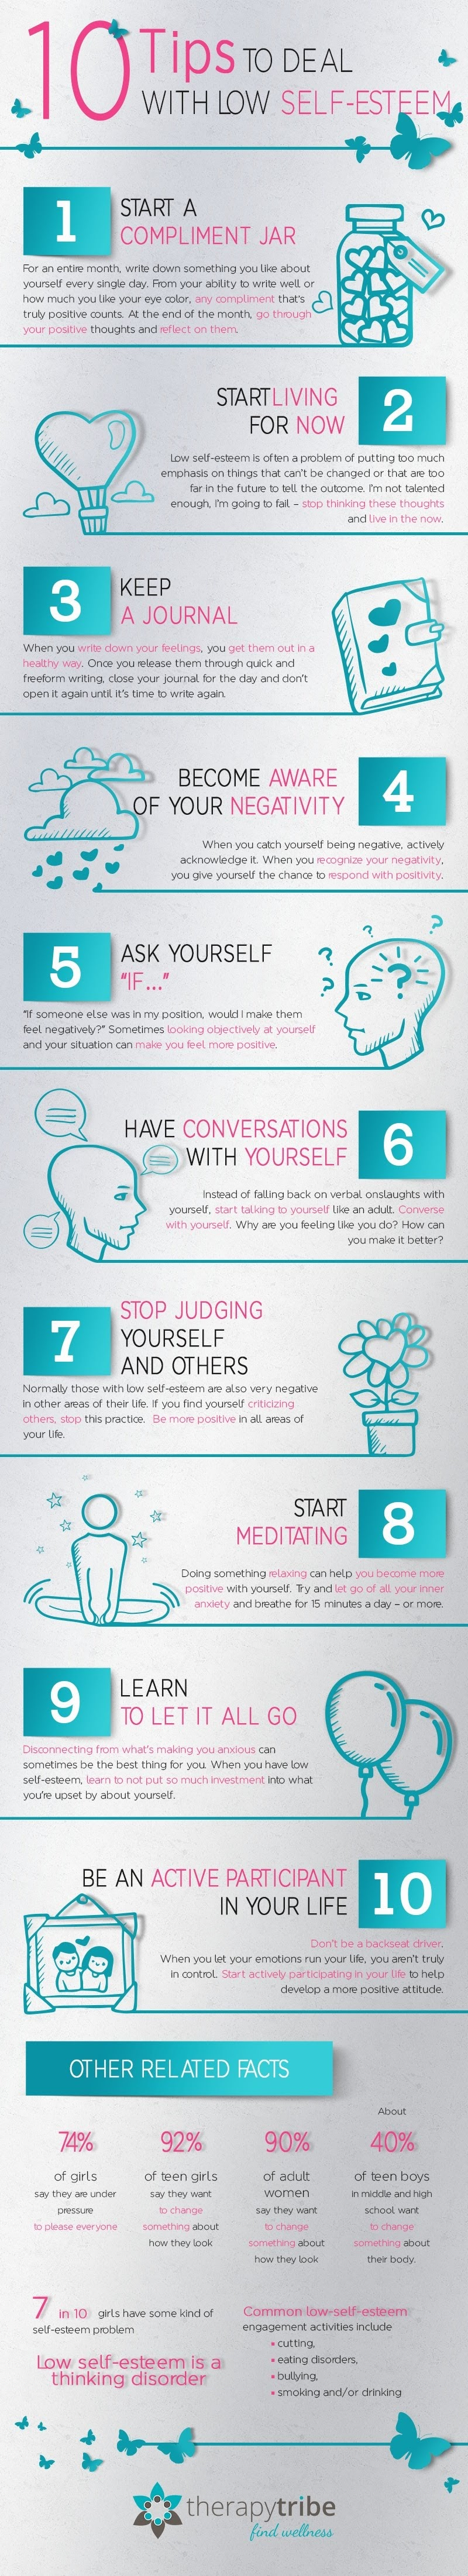 10 Tips to Deal with Low Self Esteem #Infographic